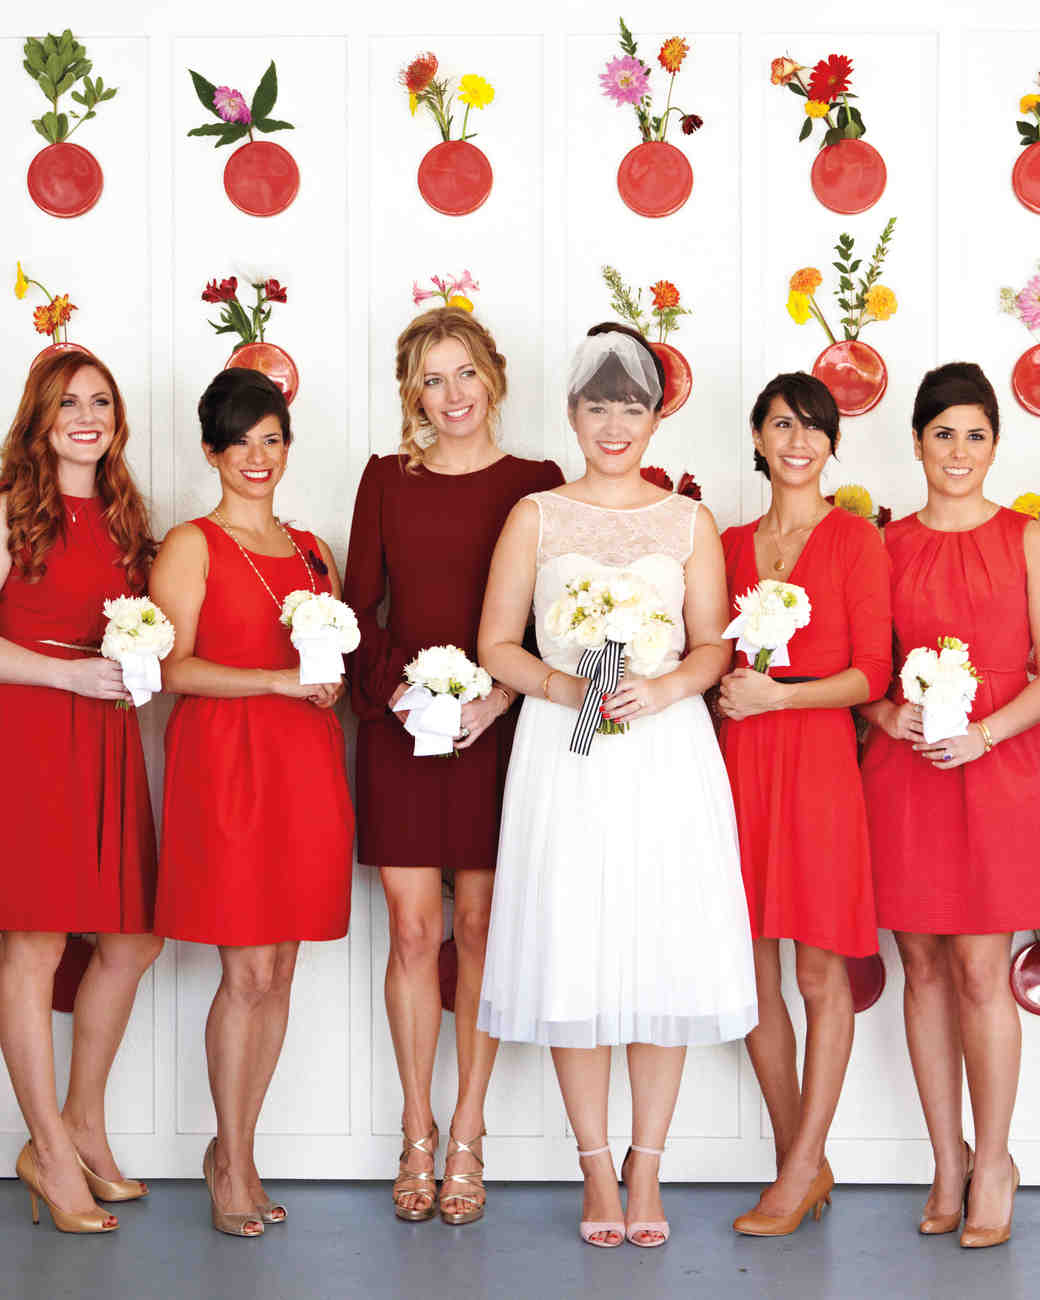 bridalparty-reddot08360816comp-mwd109592.jpg